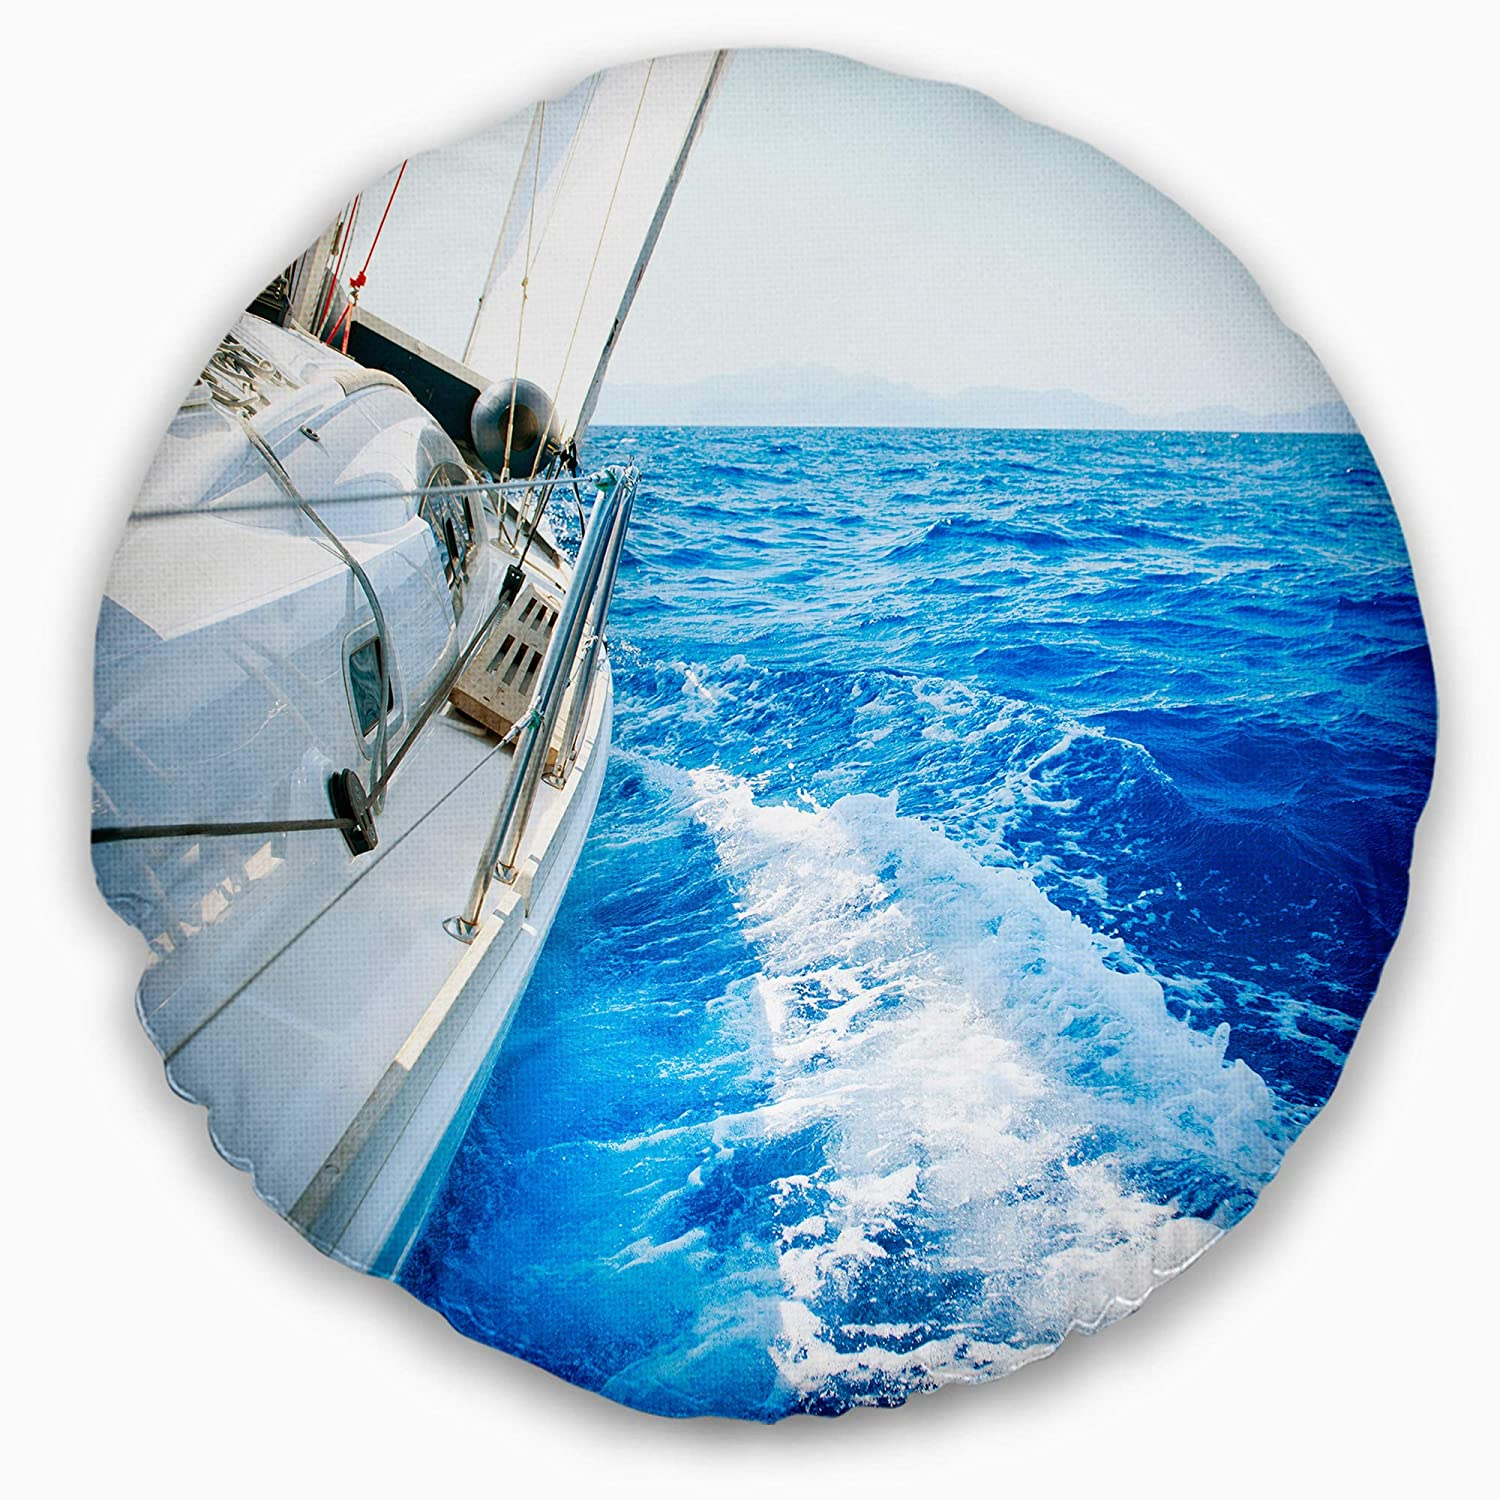 Designart Cu14262 20 20 C White Sailing Yacht In Blue Sea Seashore Round Cushion Cover For Living Room Sofa Throw Pillow 20 Insert Printed On Both Side Throw Pillow Covers Bedding